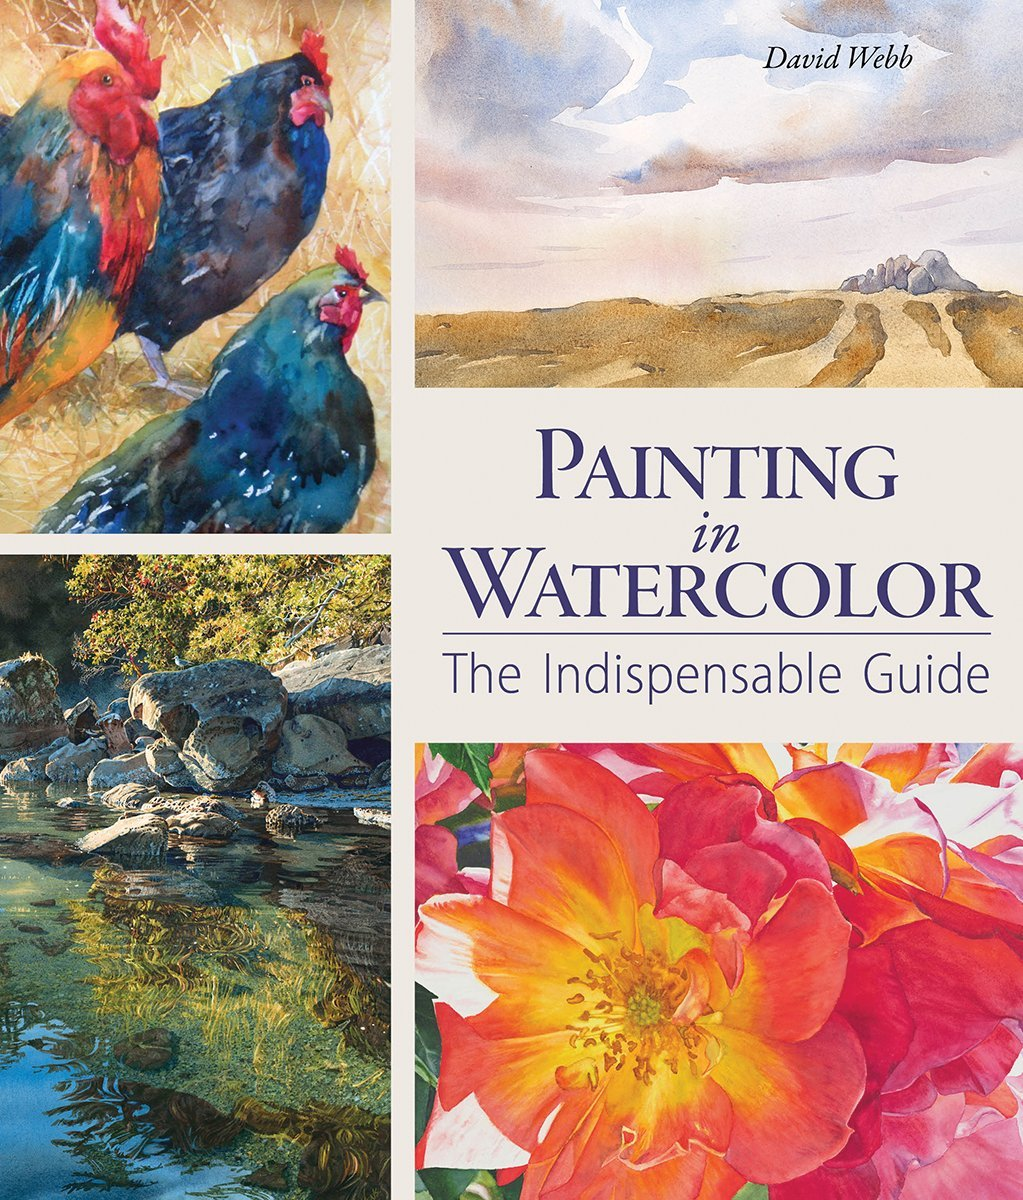 Watercolor artist magazine subscription - Painting In Watercolor The Indispensable Guide David Webb 9781770857384 Amazon Com Books